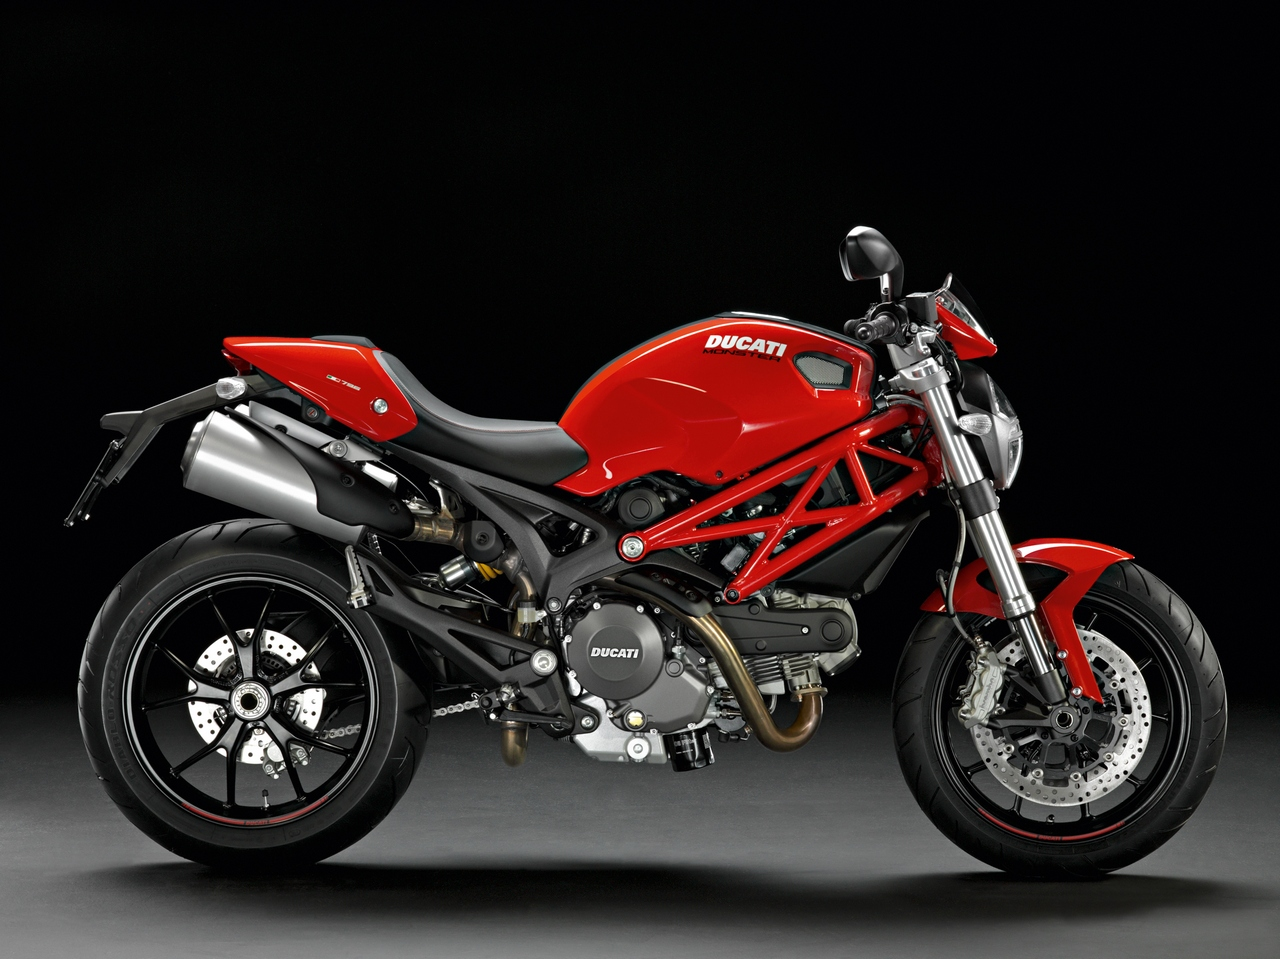 ducati monster my 2013 ad eicma 2012 11 60. Black Bedroom Furniture Sets. Home Design Ideas